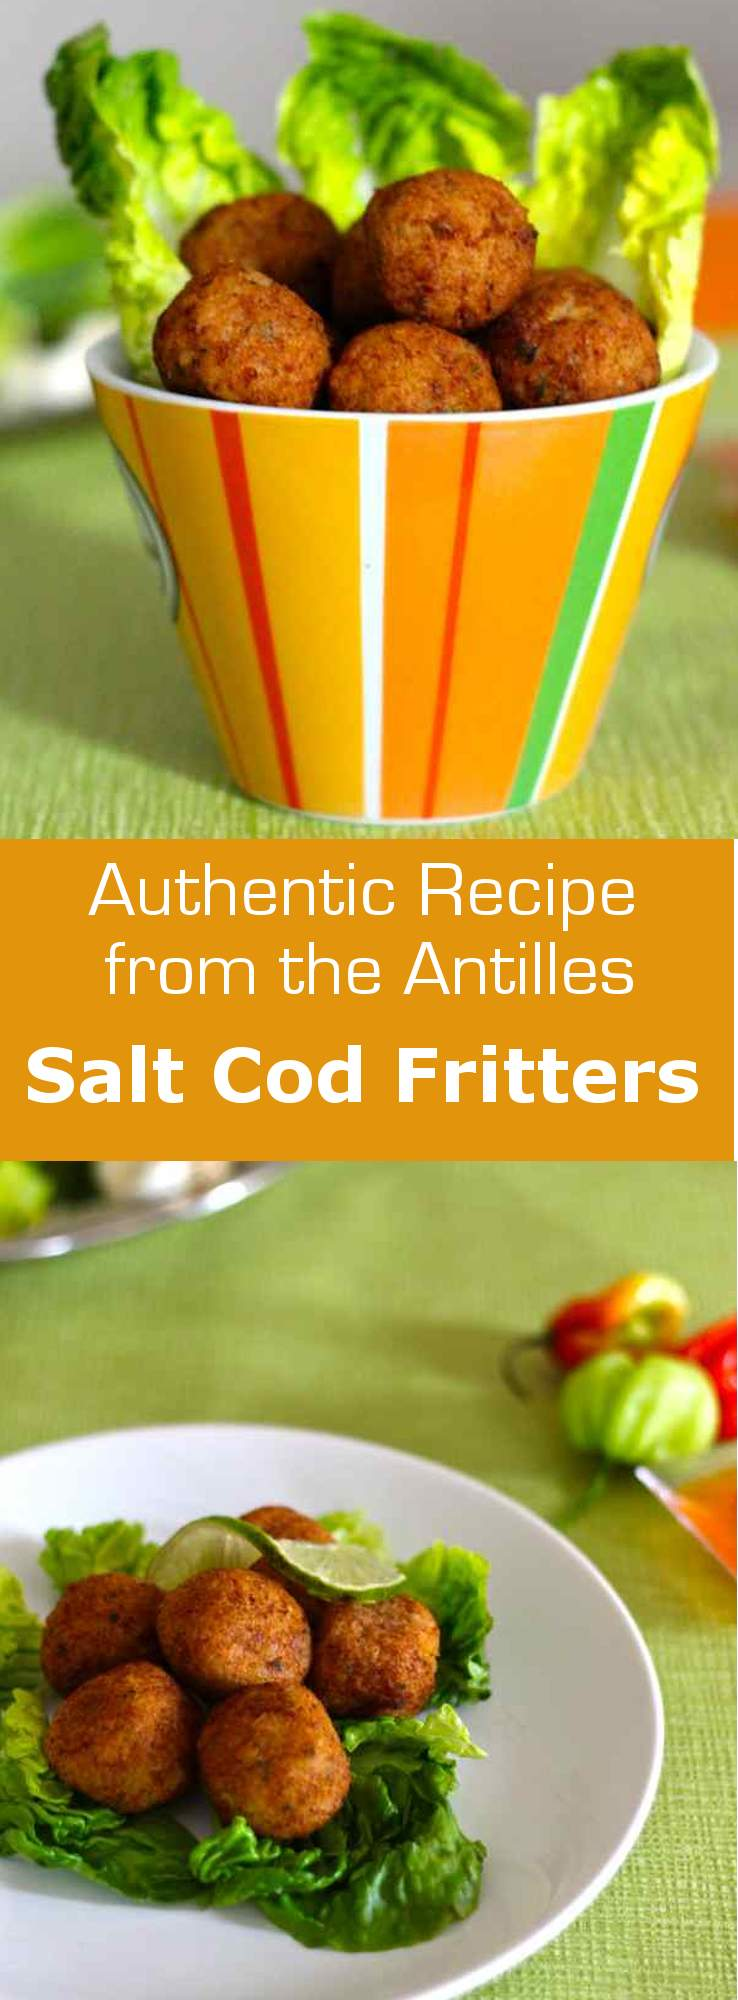 Salt cod fritters (accras de morue) are the traditional spicy and ...